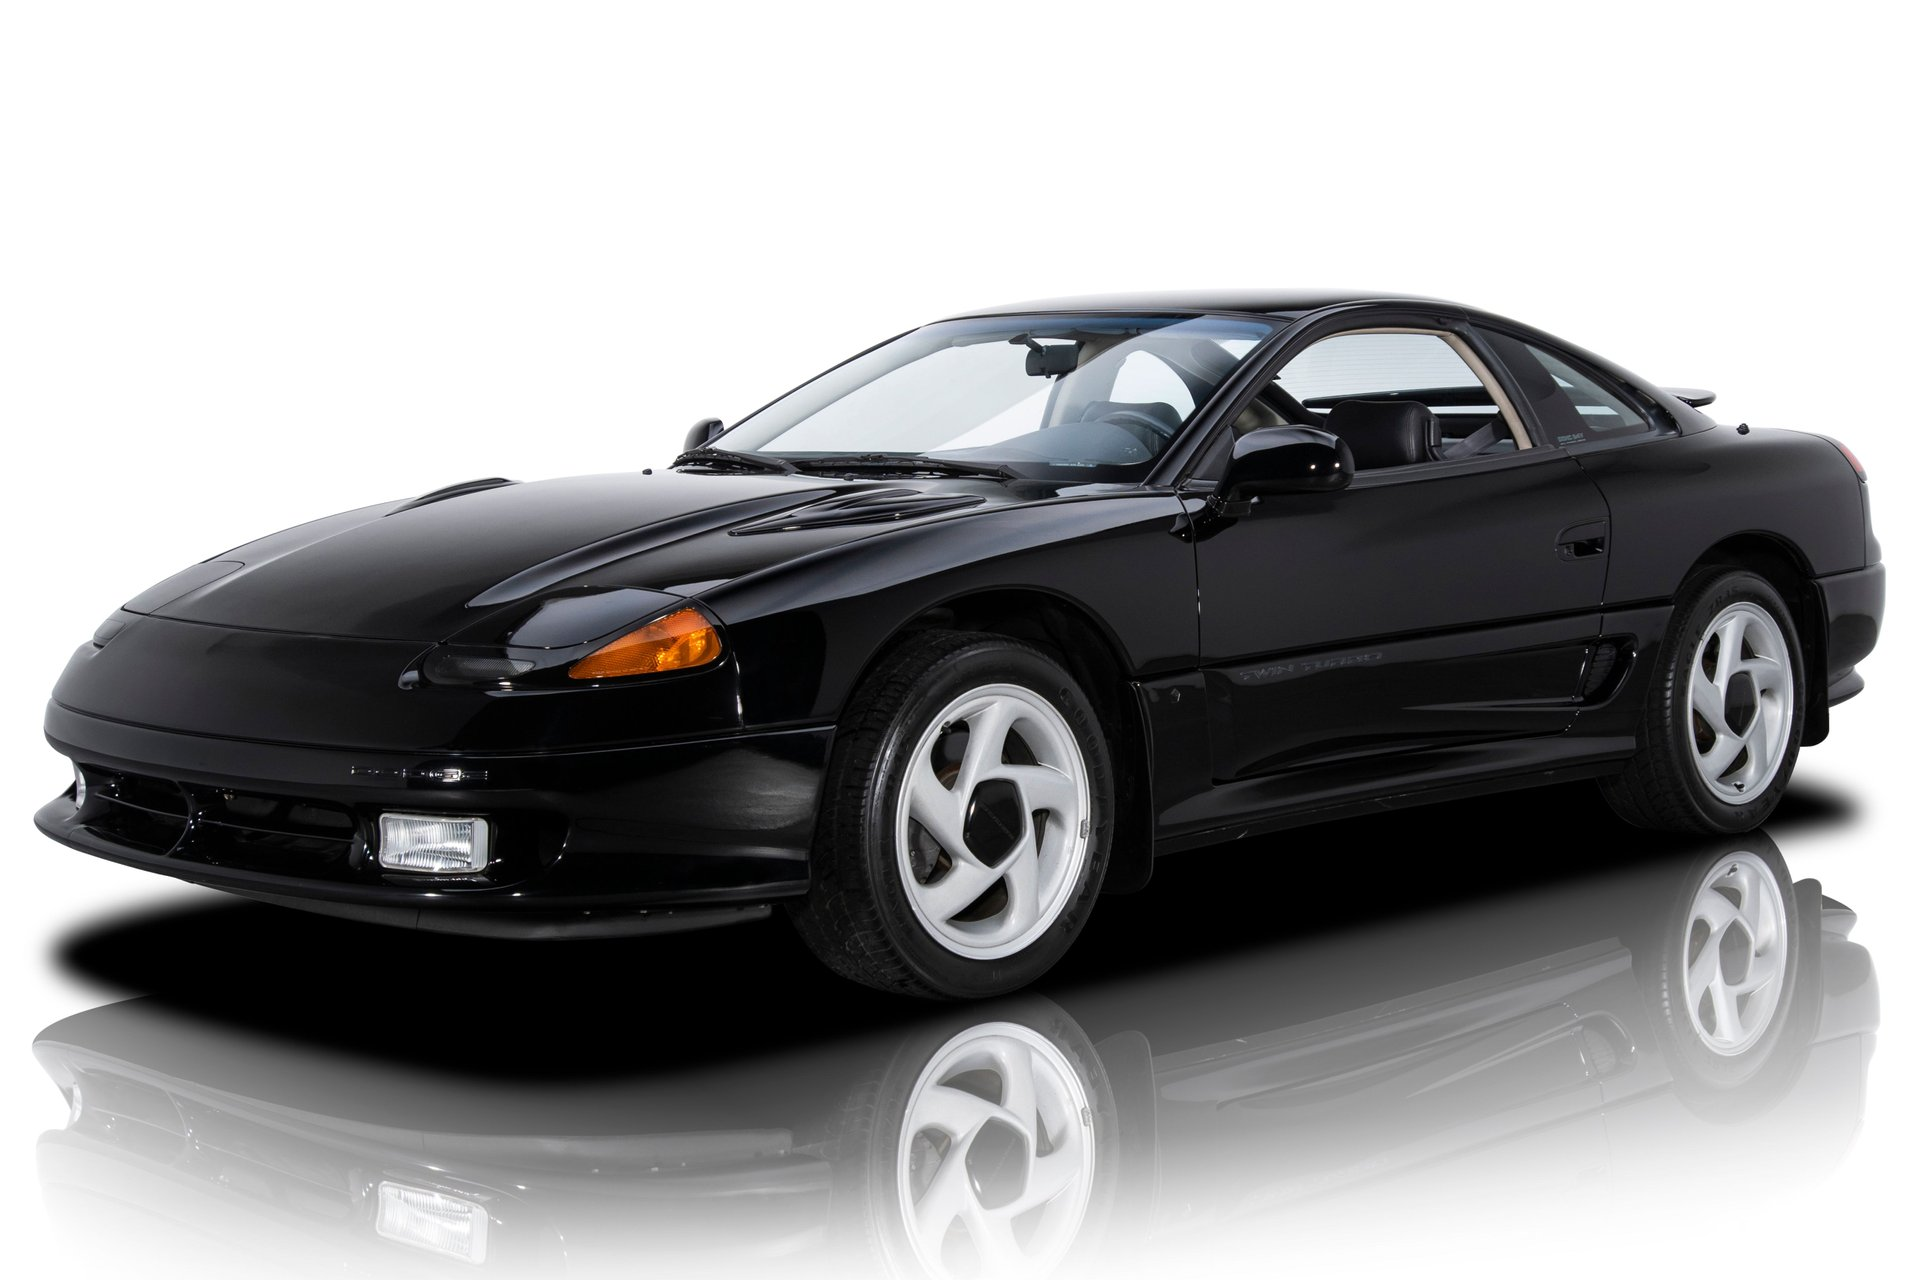 1992 dodge stealth r t twin turbo